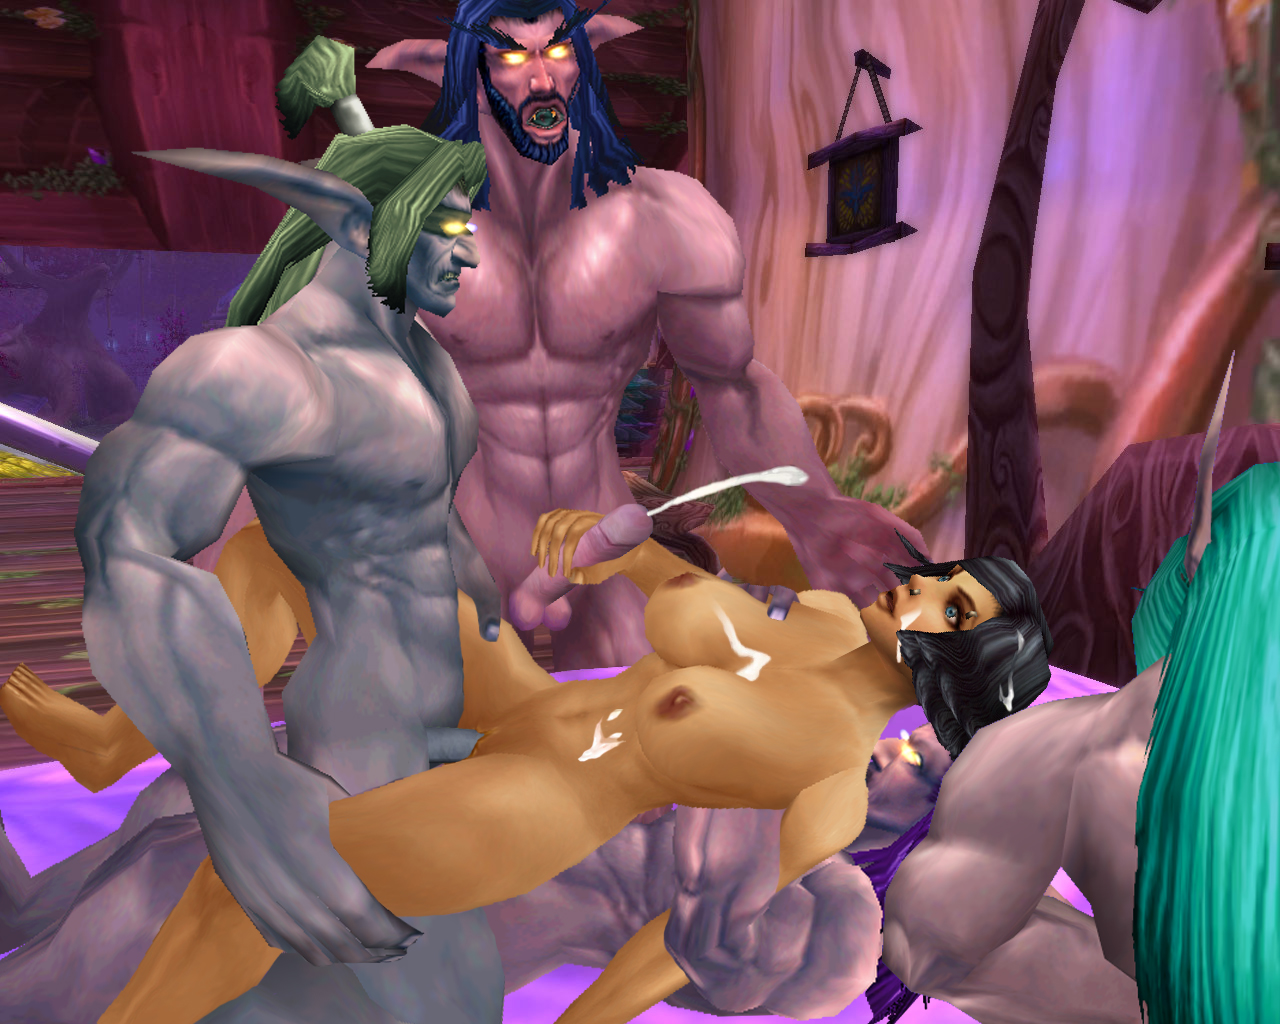 World of warcraft sex dolls hentia download